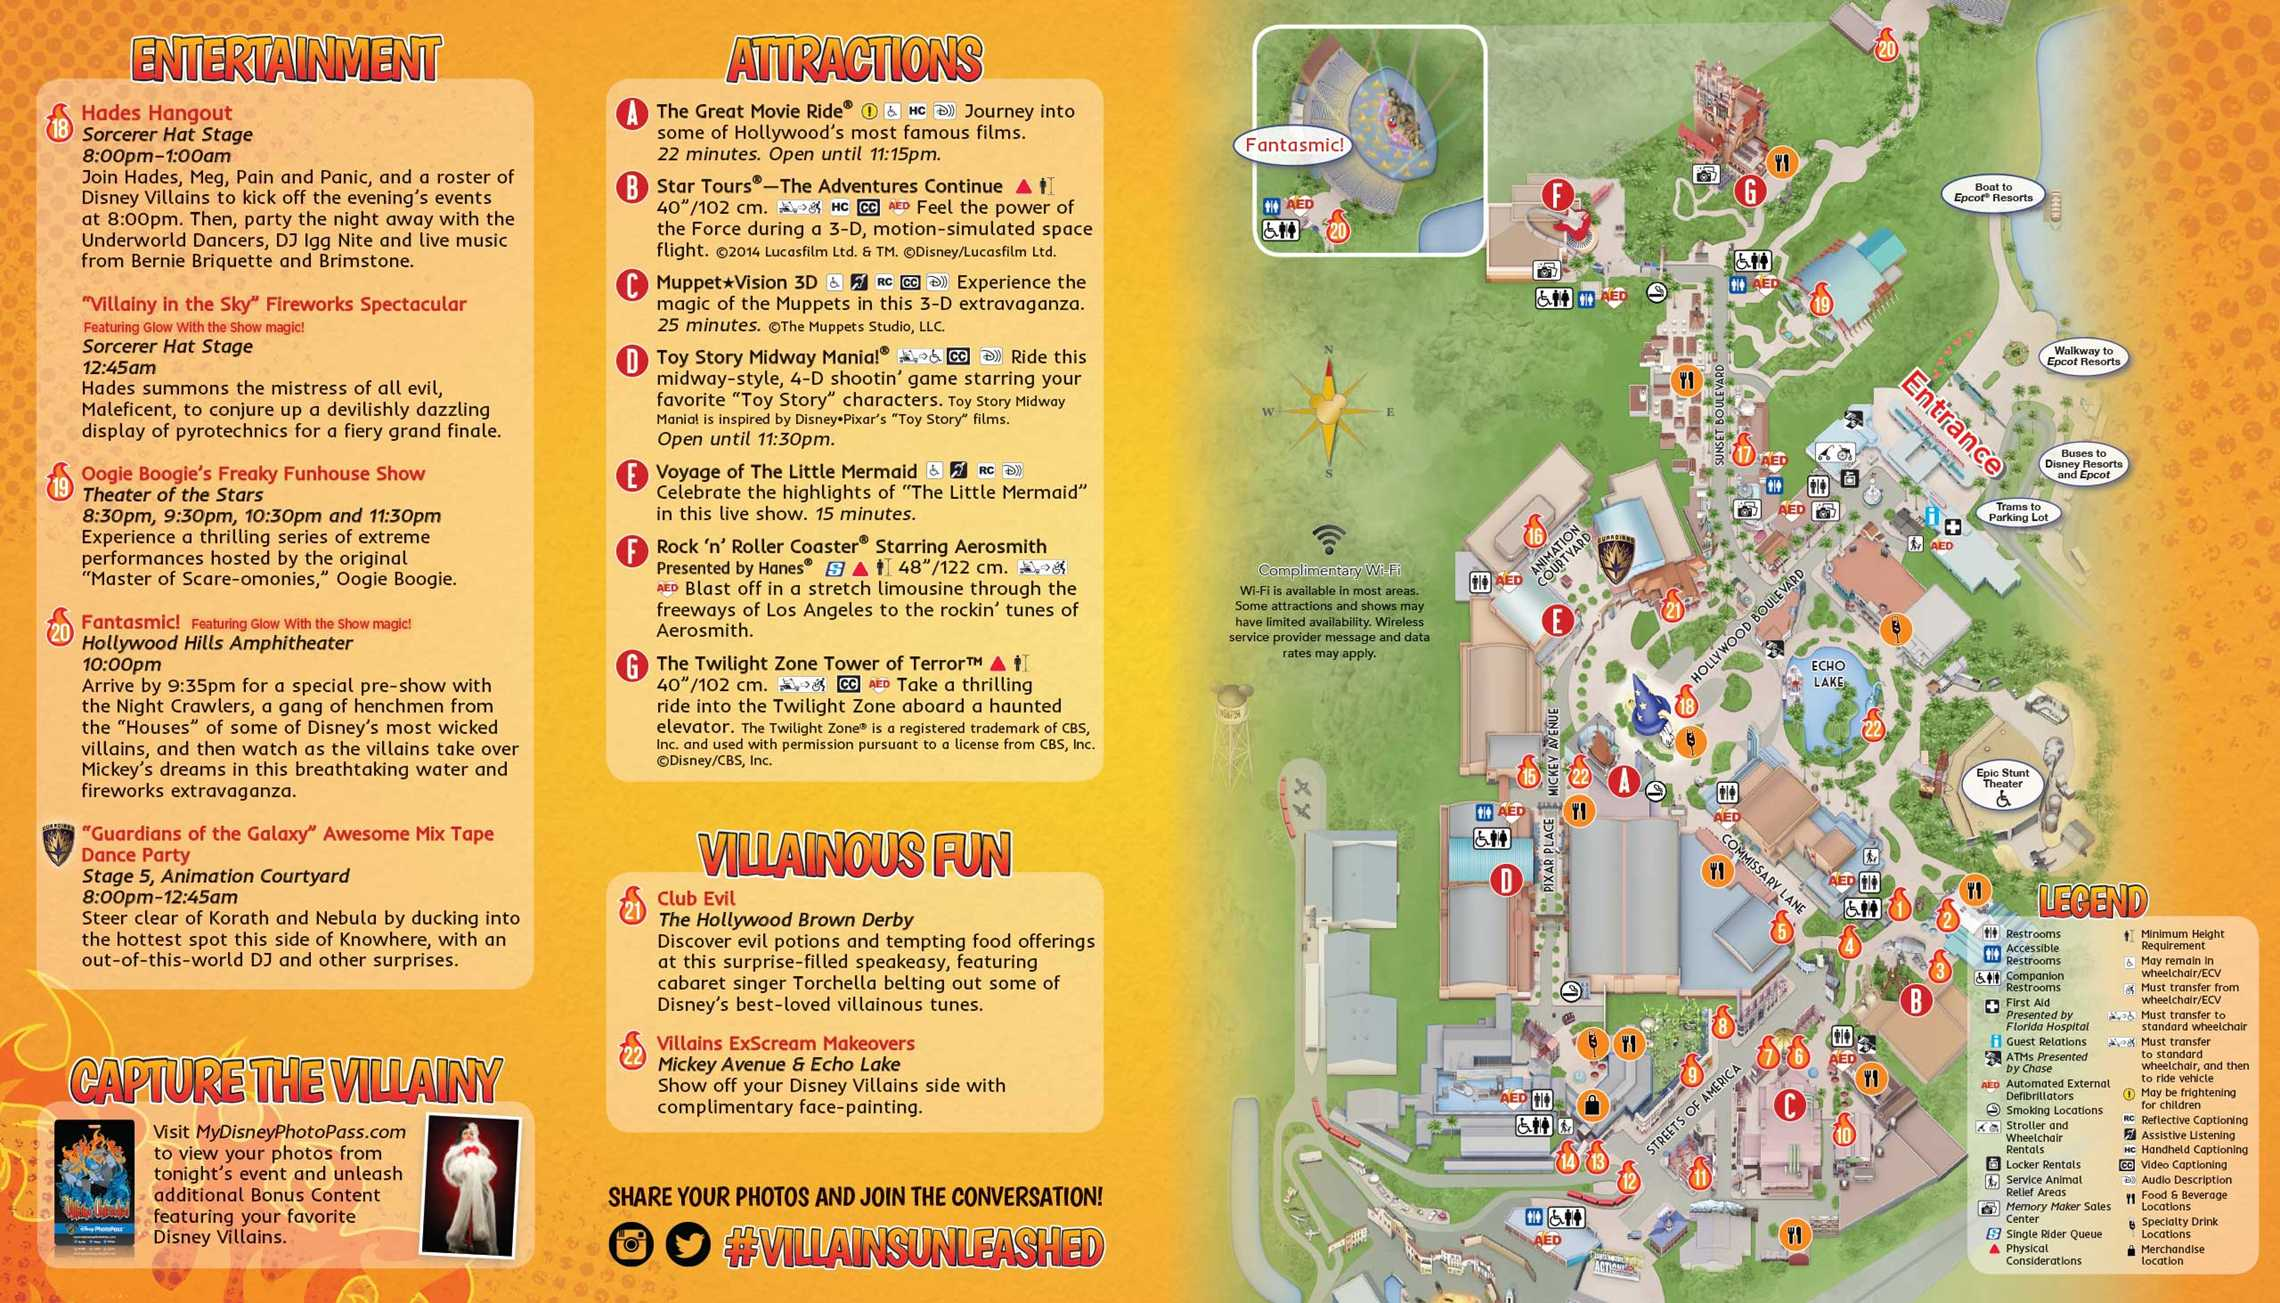 Villains Unleashed guide map - back